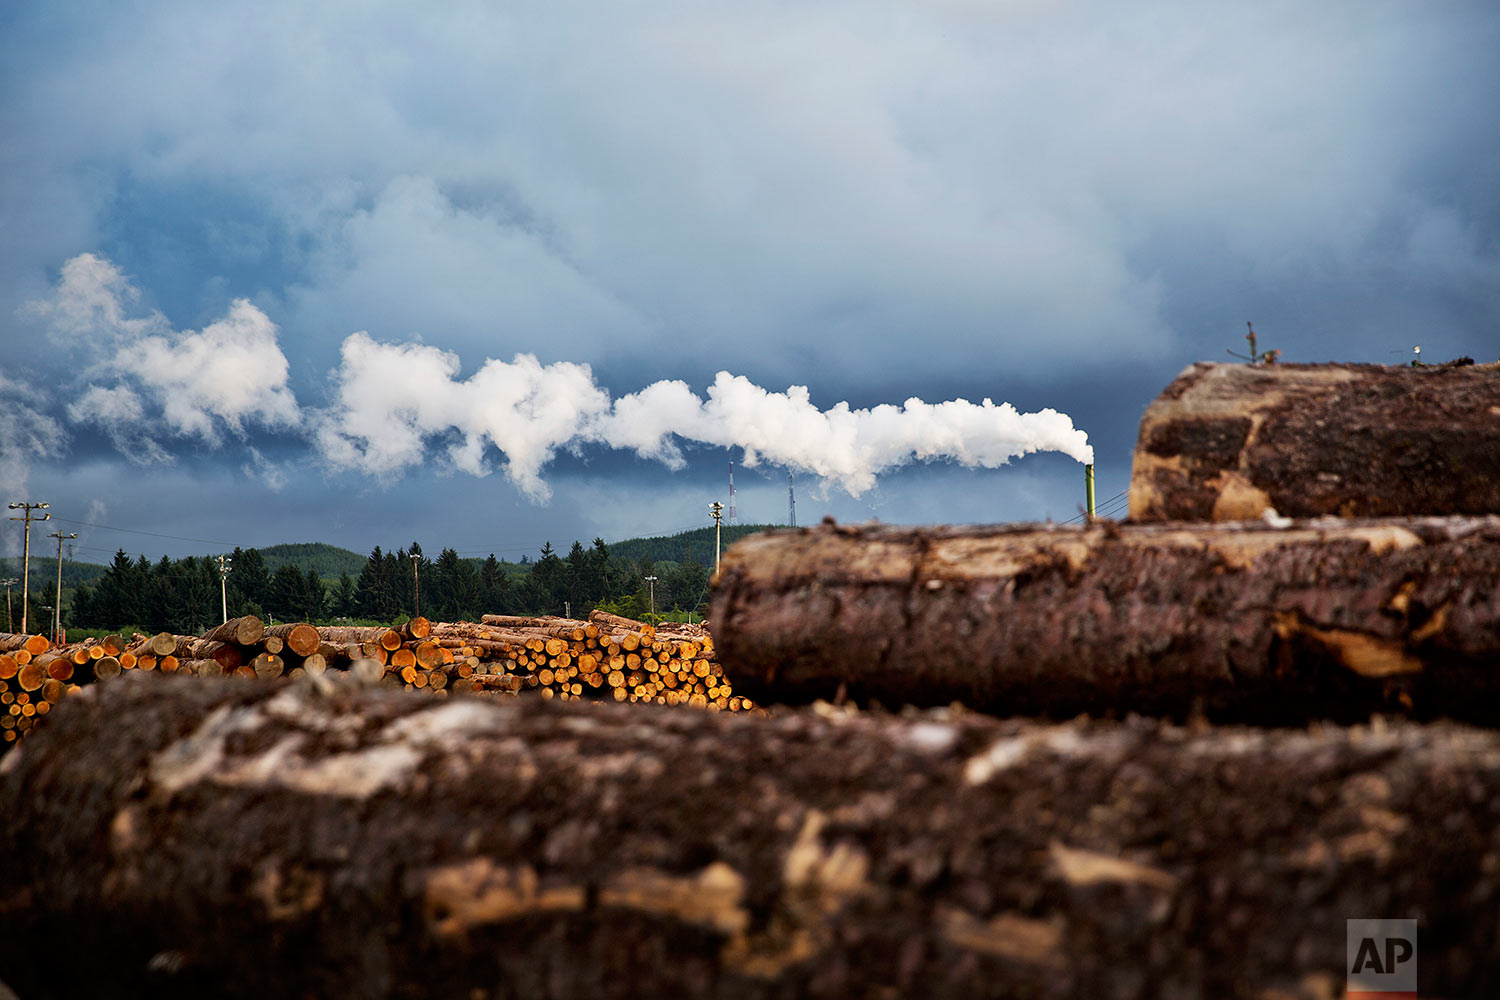 Logs are piled at a lumber yard in Aberdeen, Wash., Monday, June 12, 2017. The timber economy started to slip in the 1960s, slowly at first. Then the federal government in 1990 limited the level of logging in an attempt to save an endangered owl, the ships stopped coming and the river that used to drive the economy now sits still. (AP Photo/David Goldman)